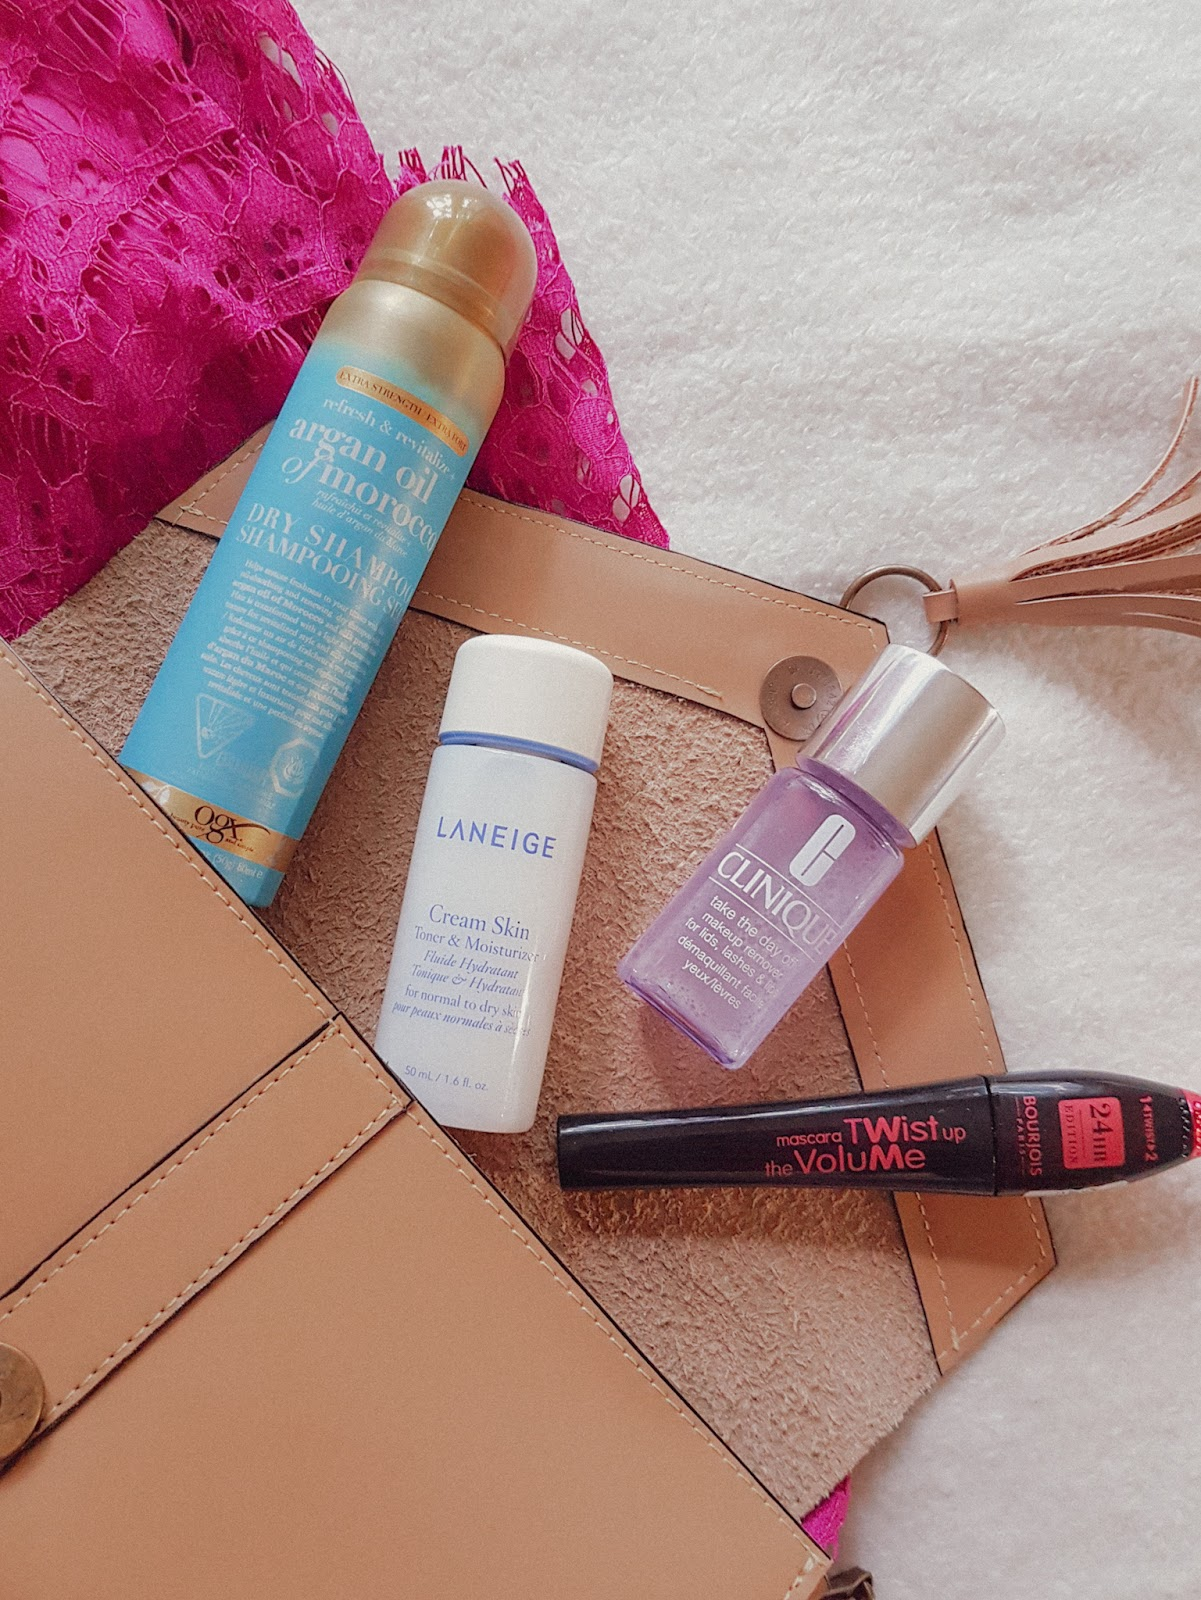 Review of multiple skincare and beauty products in the Date Night Essentials Vox Box